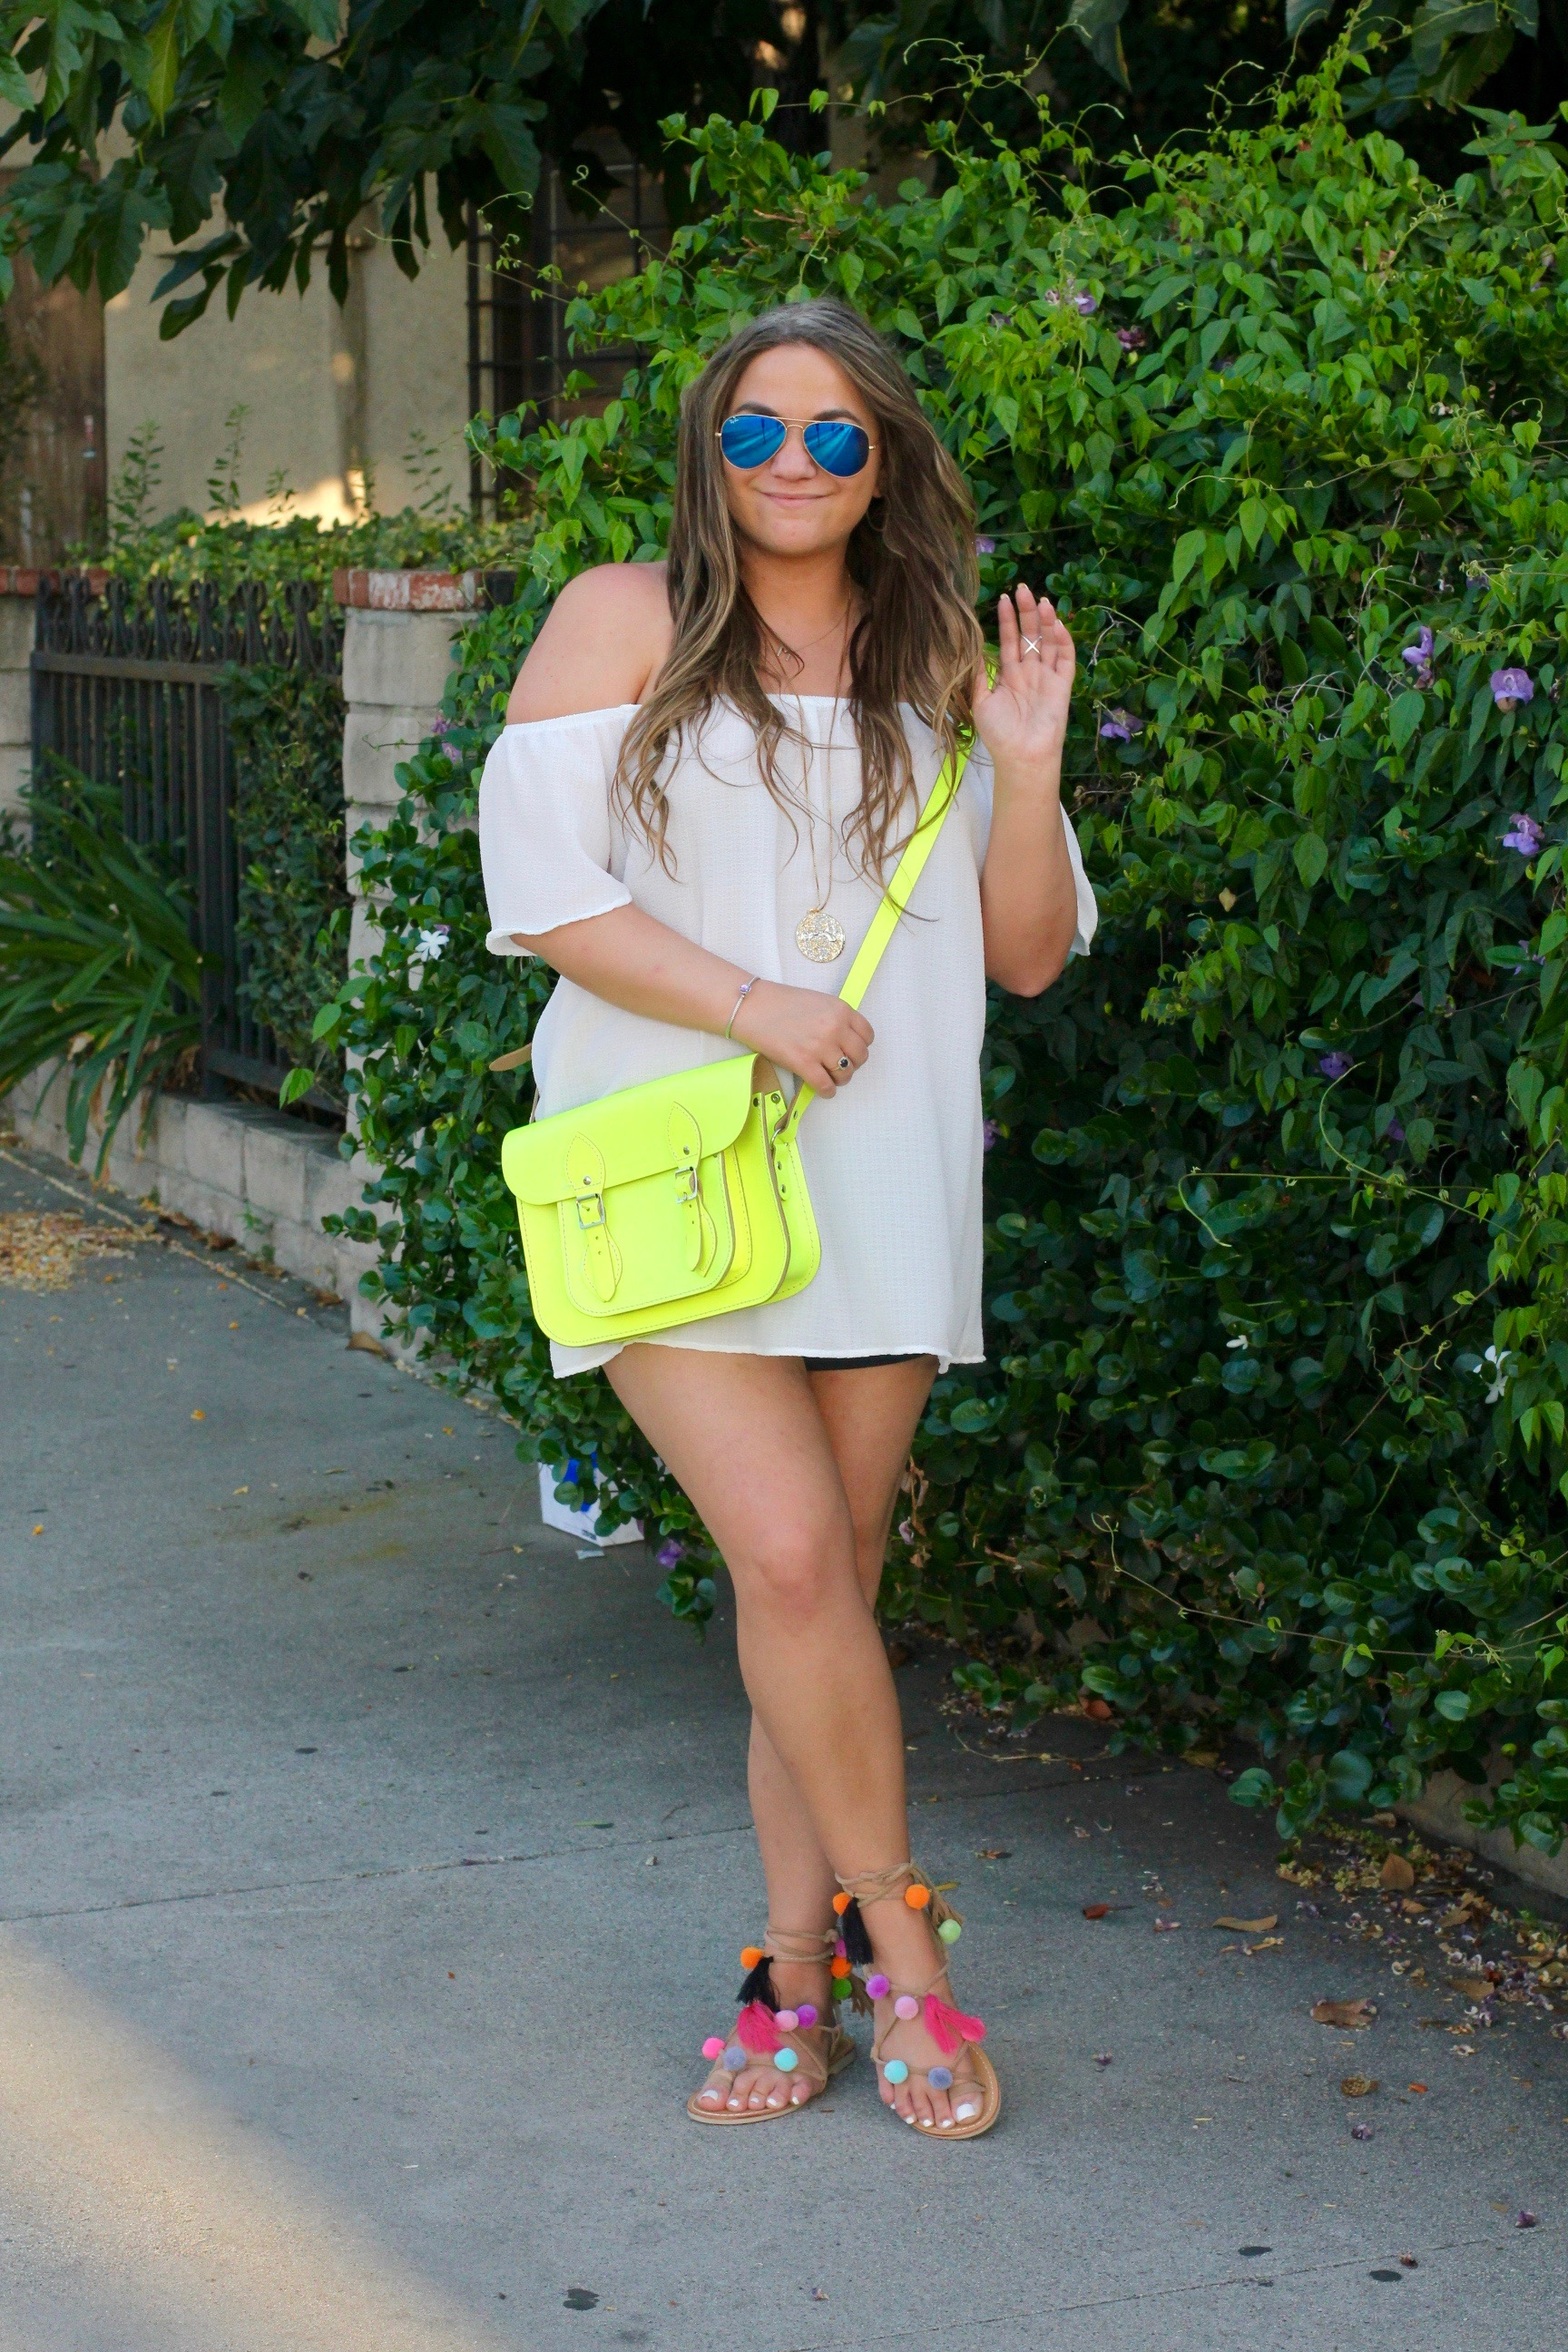 missyonmadison, melissa tierney, fashion blog, fashion blogger, style blogger, la blogger, summer style, pom pom sandals, pom pom flats, summer trend, summer sandals, off the shoulder top, white off the shoulder blouse, cambridge satchel, neon cambridge satchel, ray bans, mirrored aviators ray bans, off the shoulder blouse, cali girl, brunette hair, hairstyle,